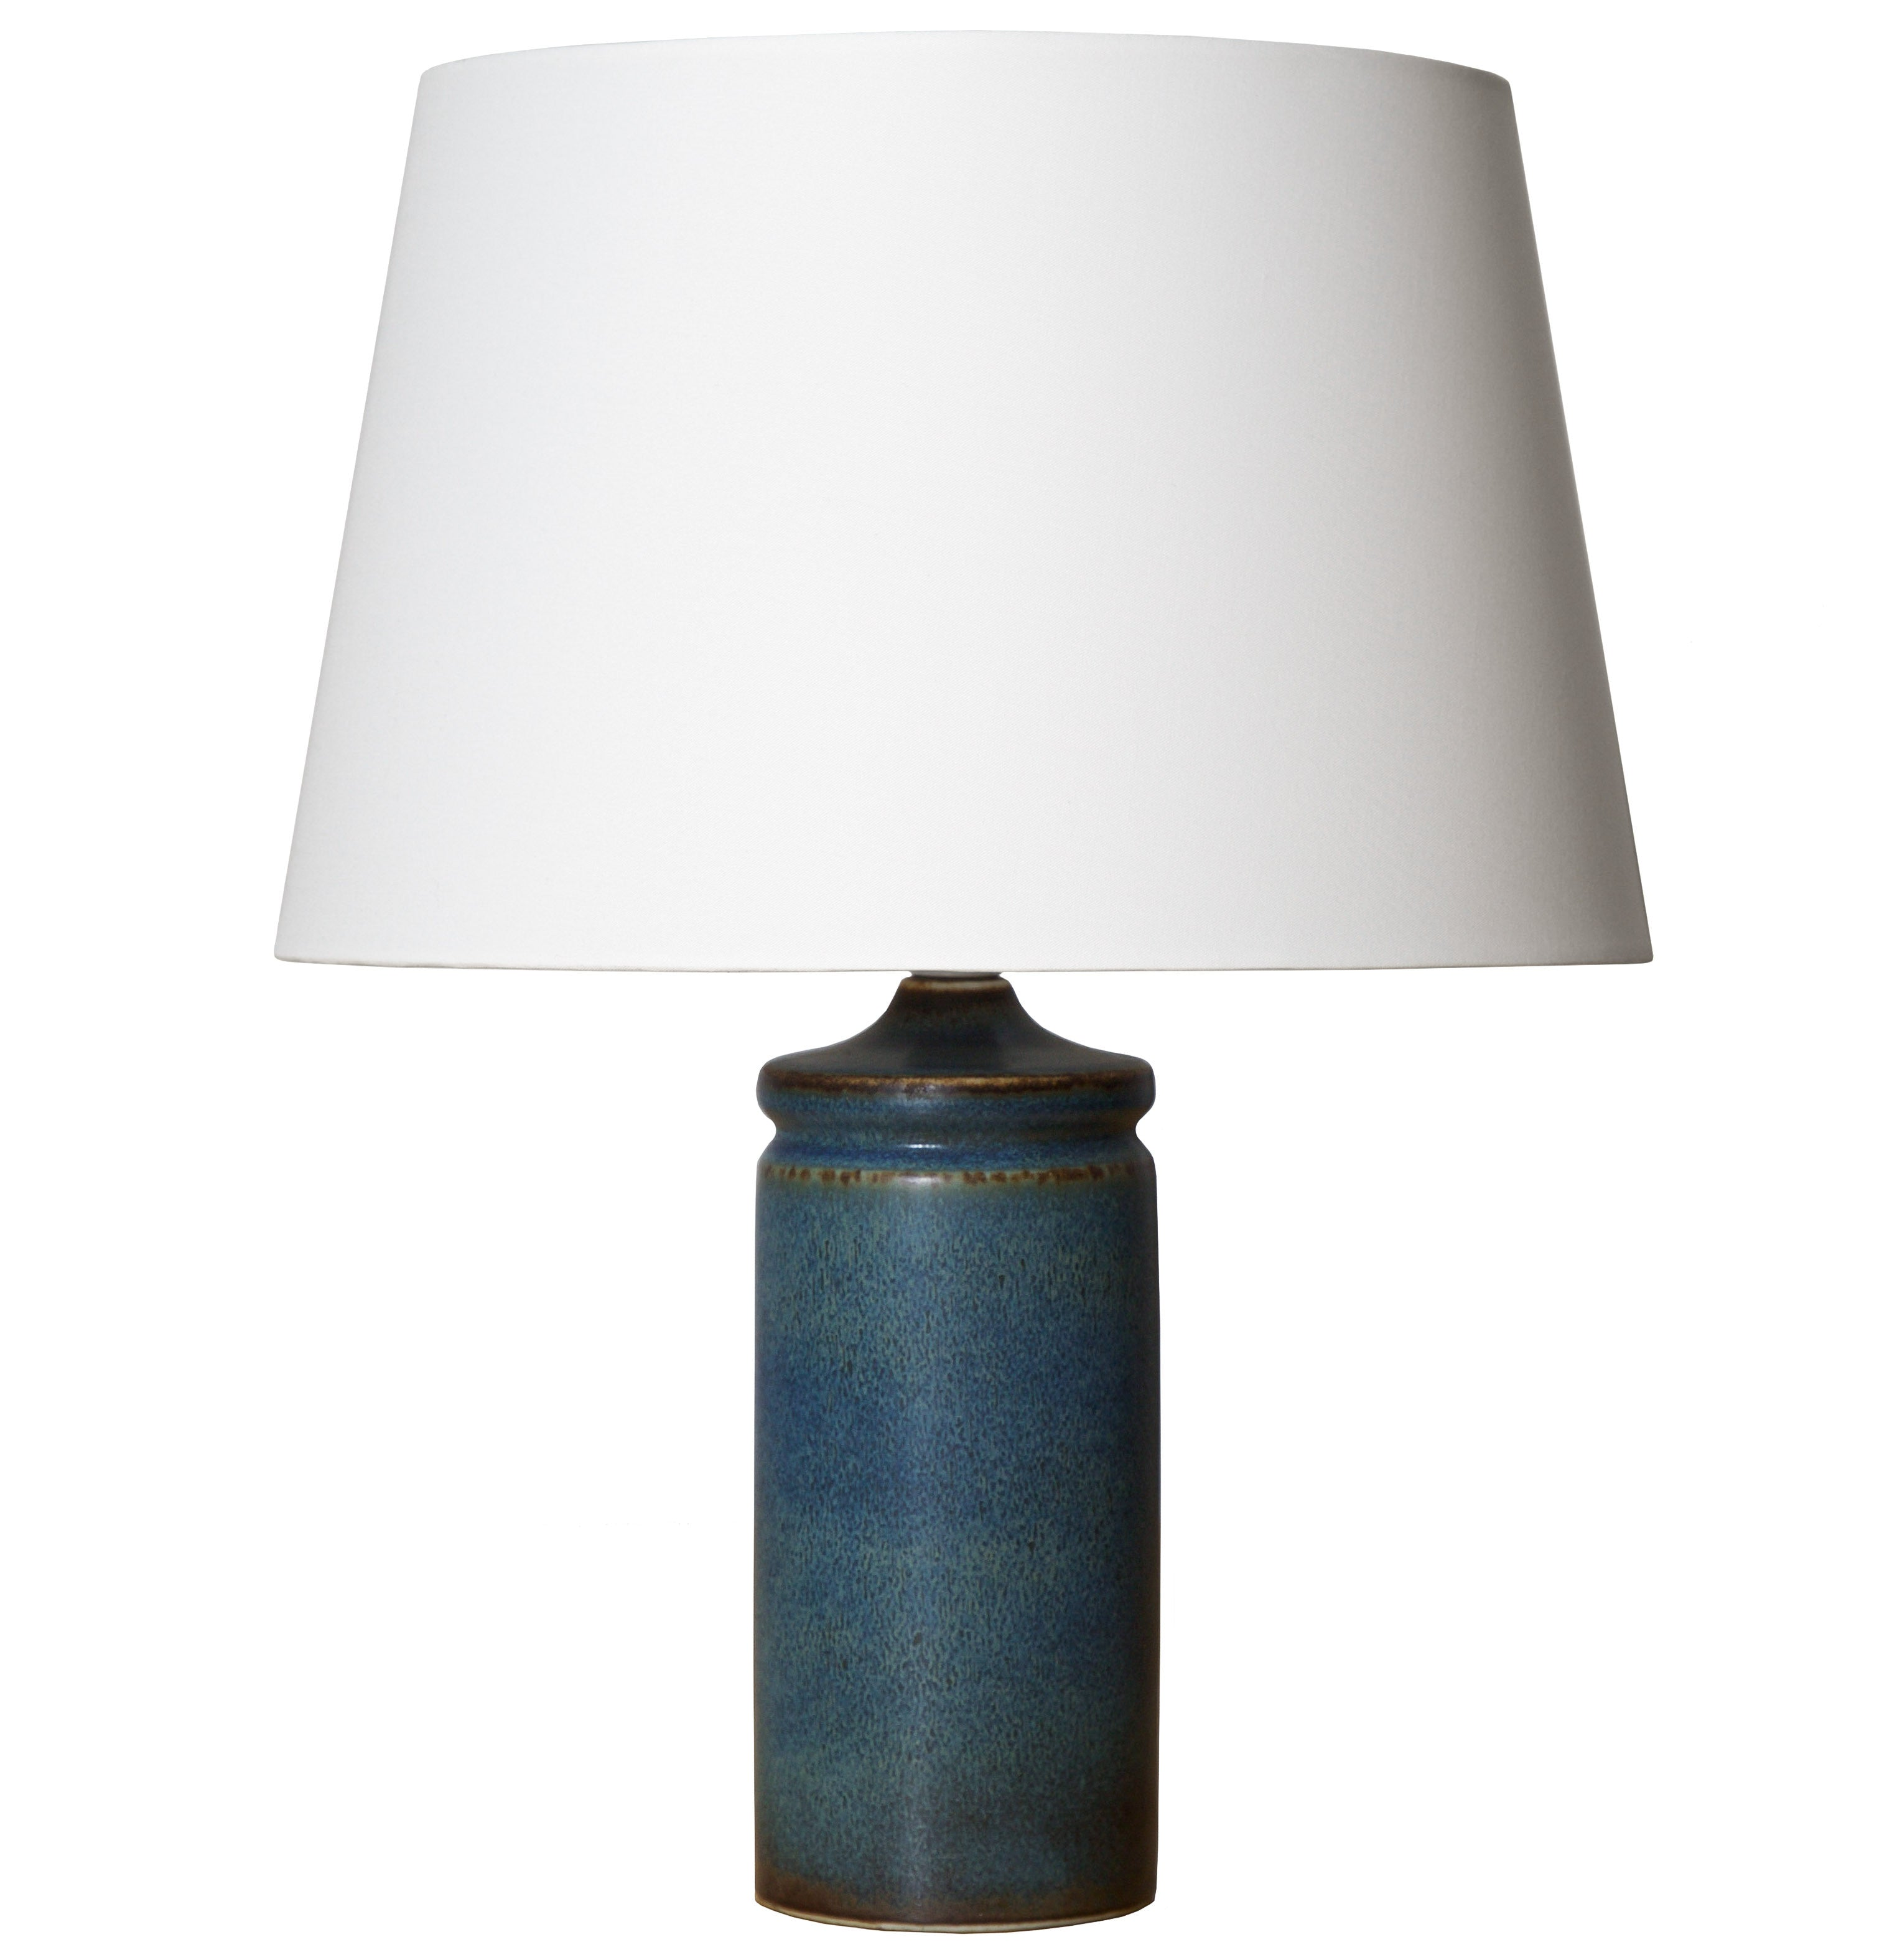 Carl-Harry Stalhane Ceramic Table Lamp, Rörstrand Ab, Sweden, 1950s